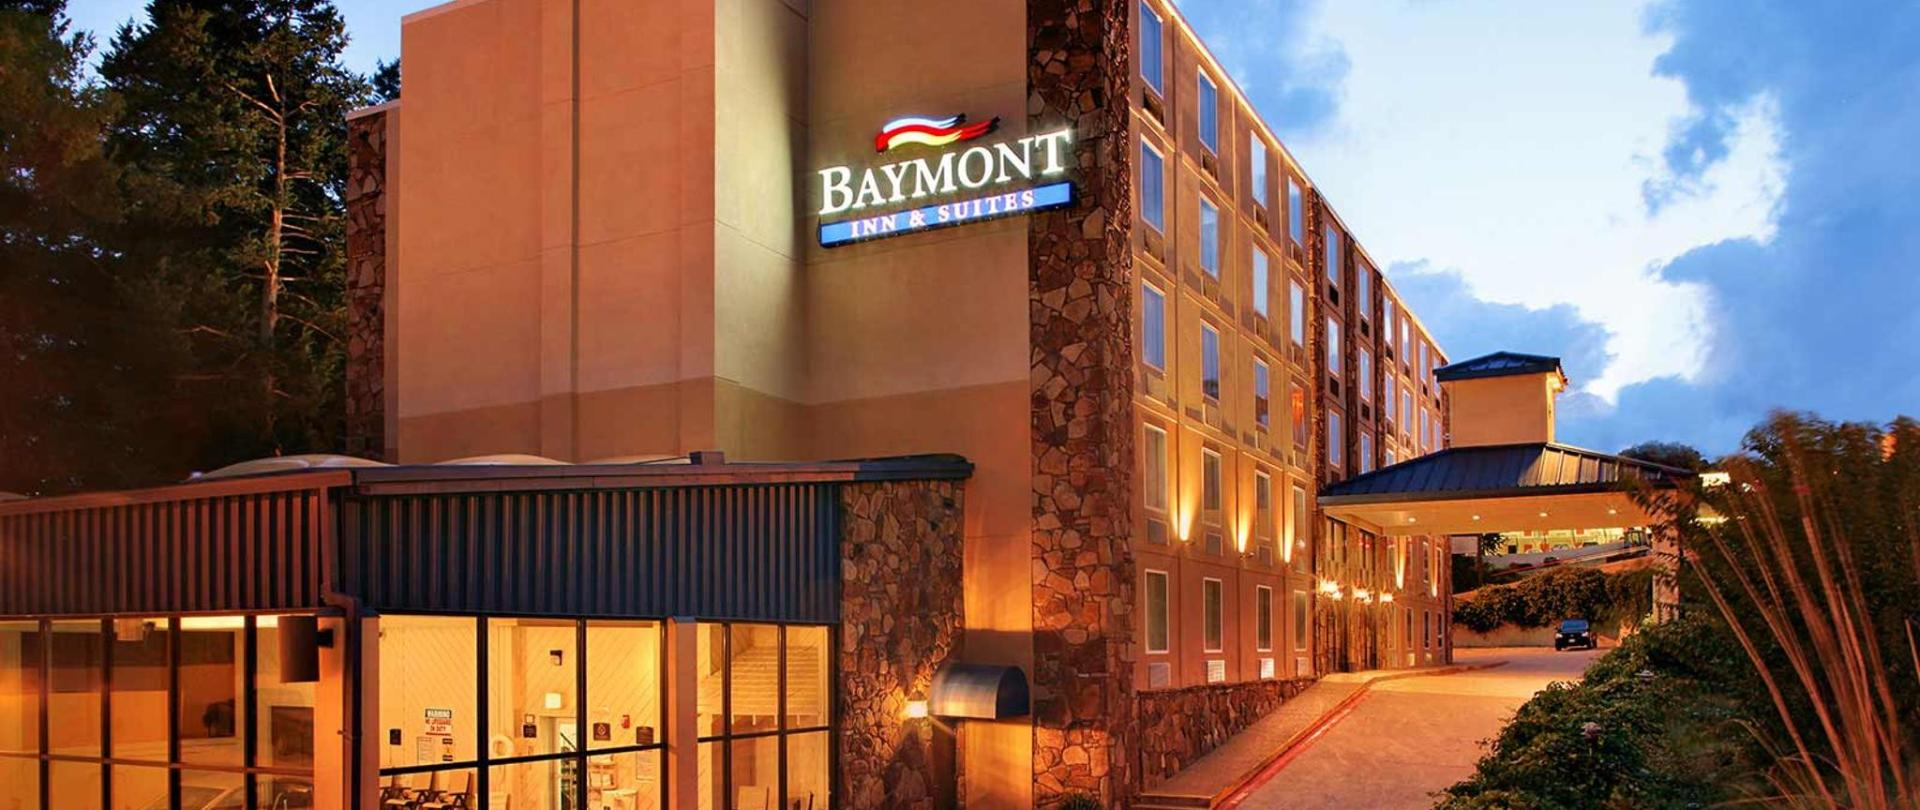 Baymont Inn And Suites Branson Missouri Home1 Top